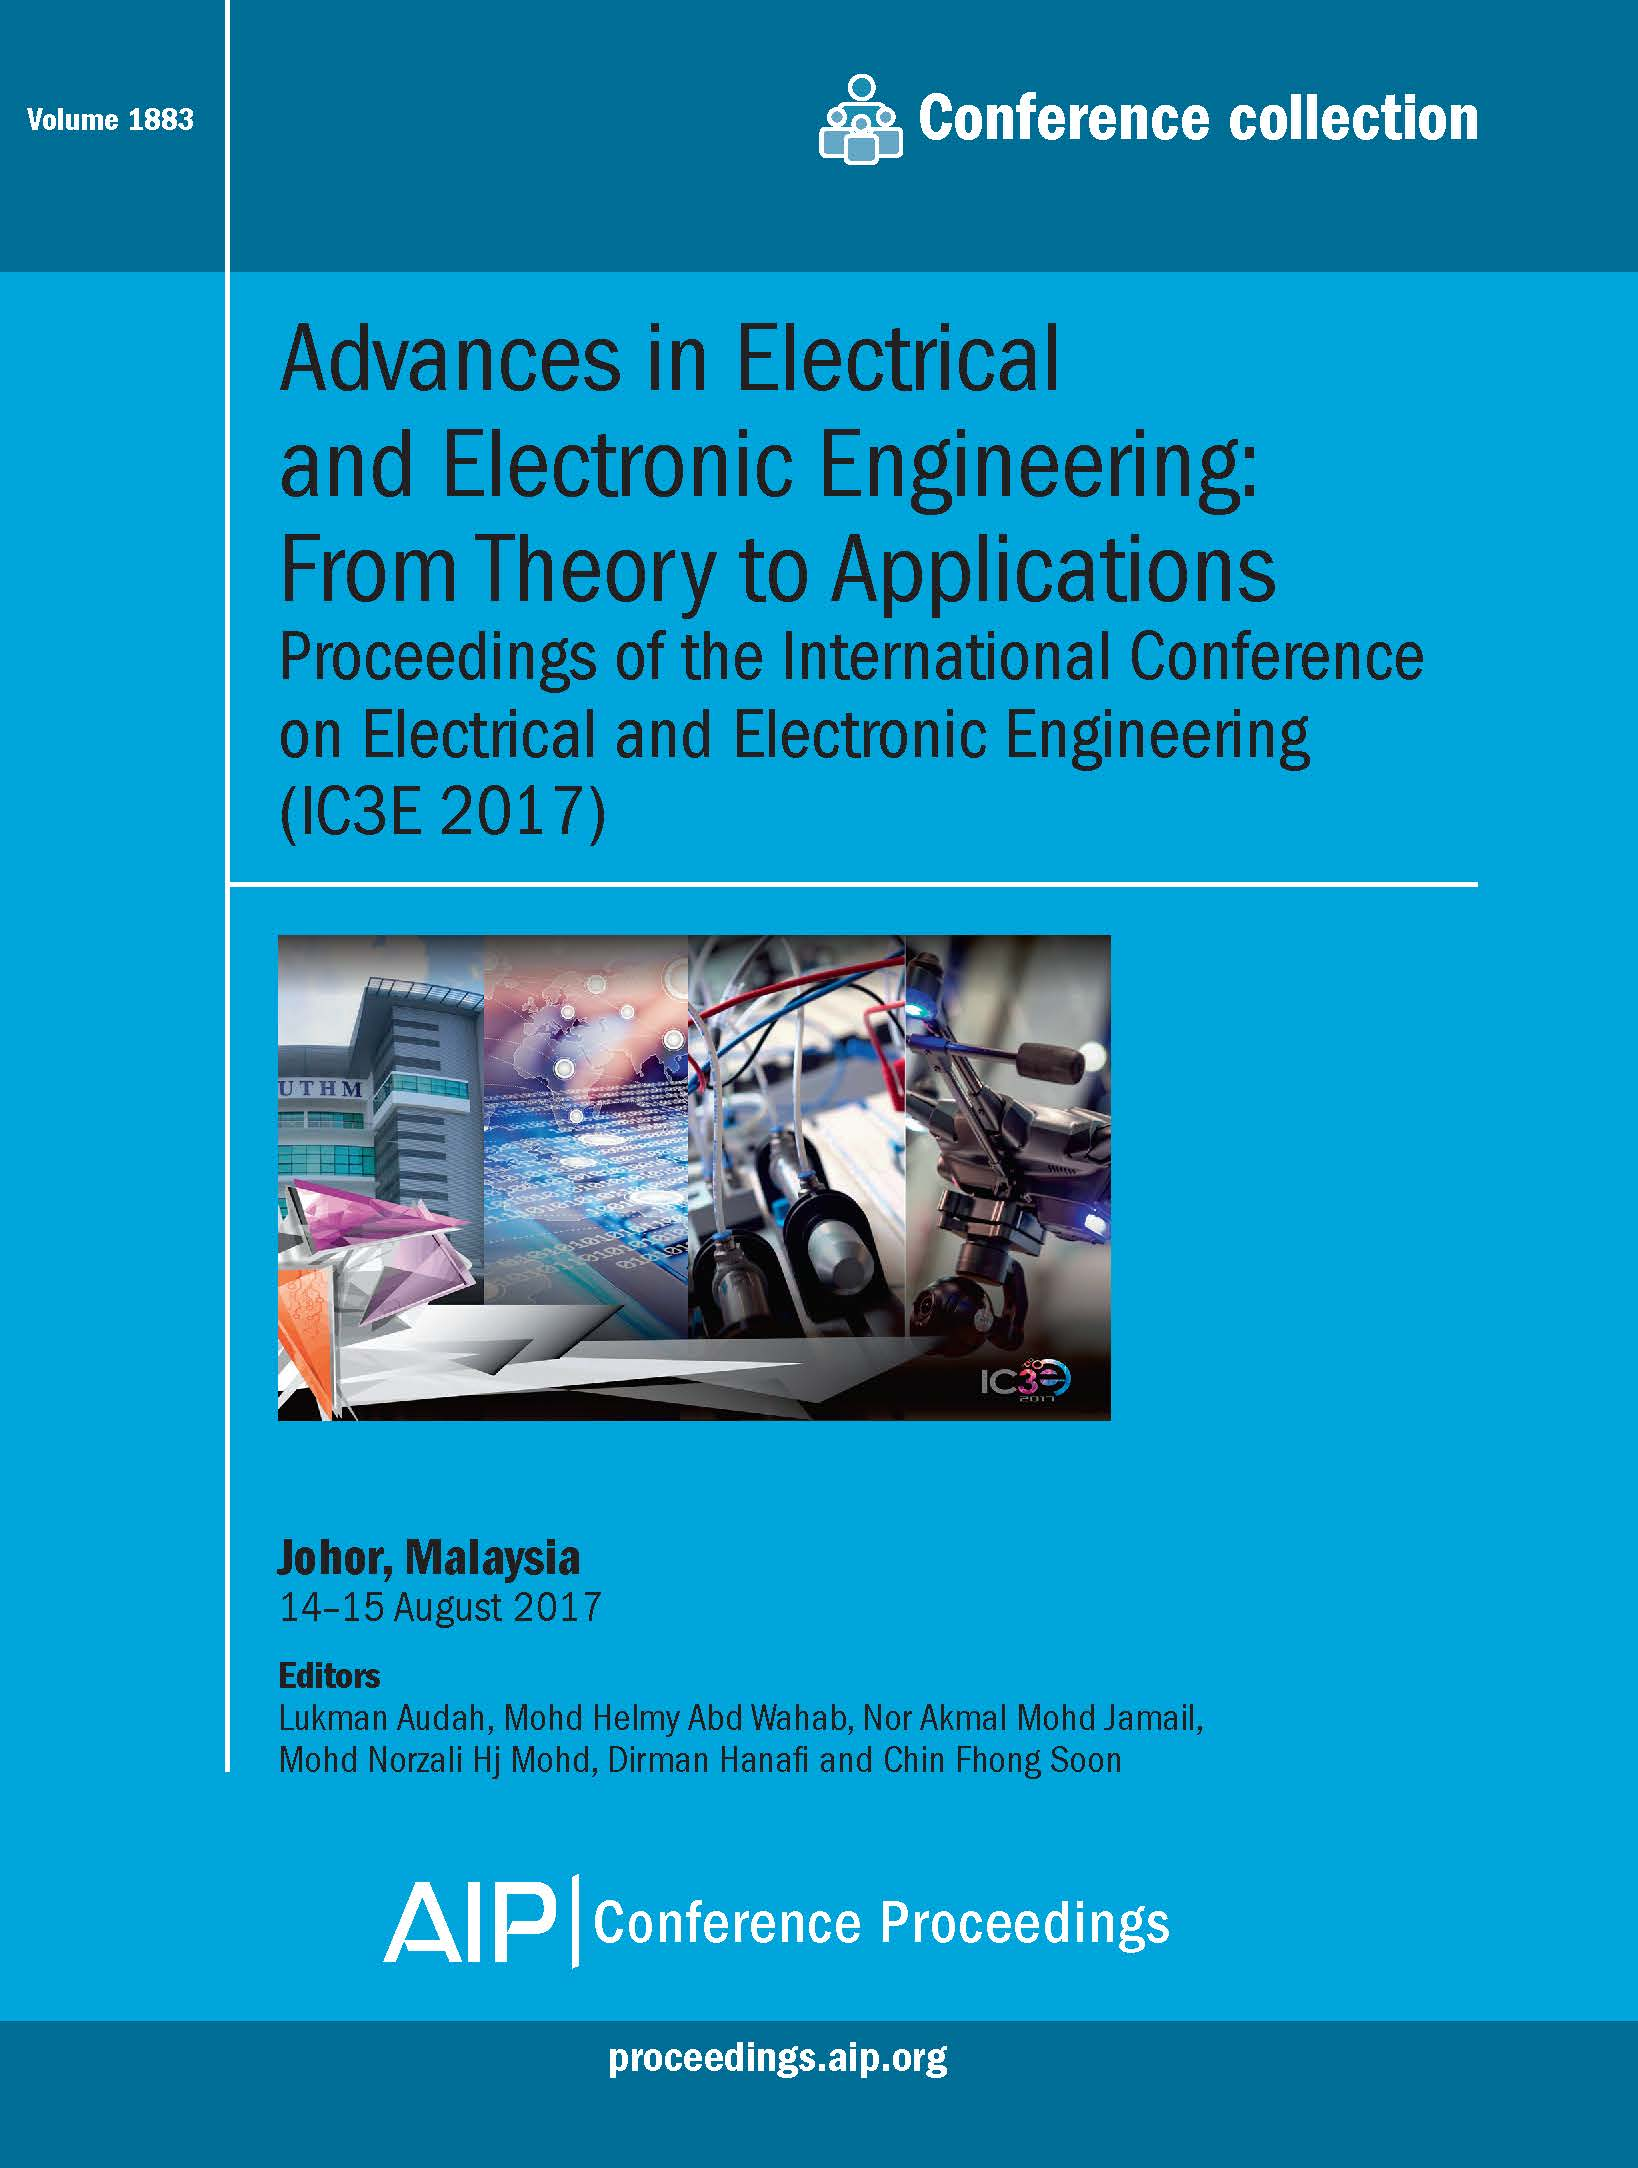 Volume 1883: Advances in Electrical and Electronic Engineering: From